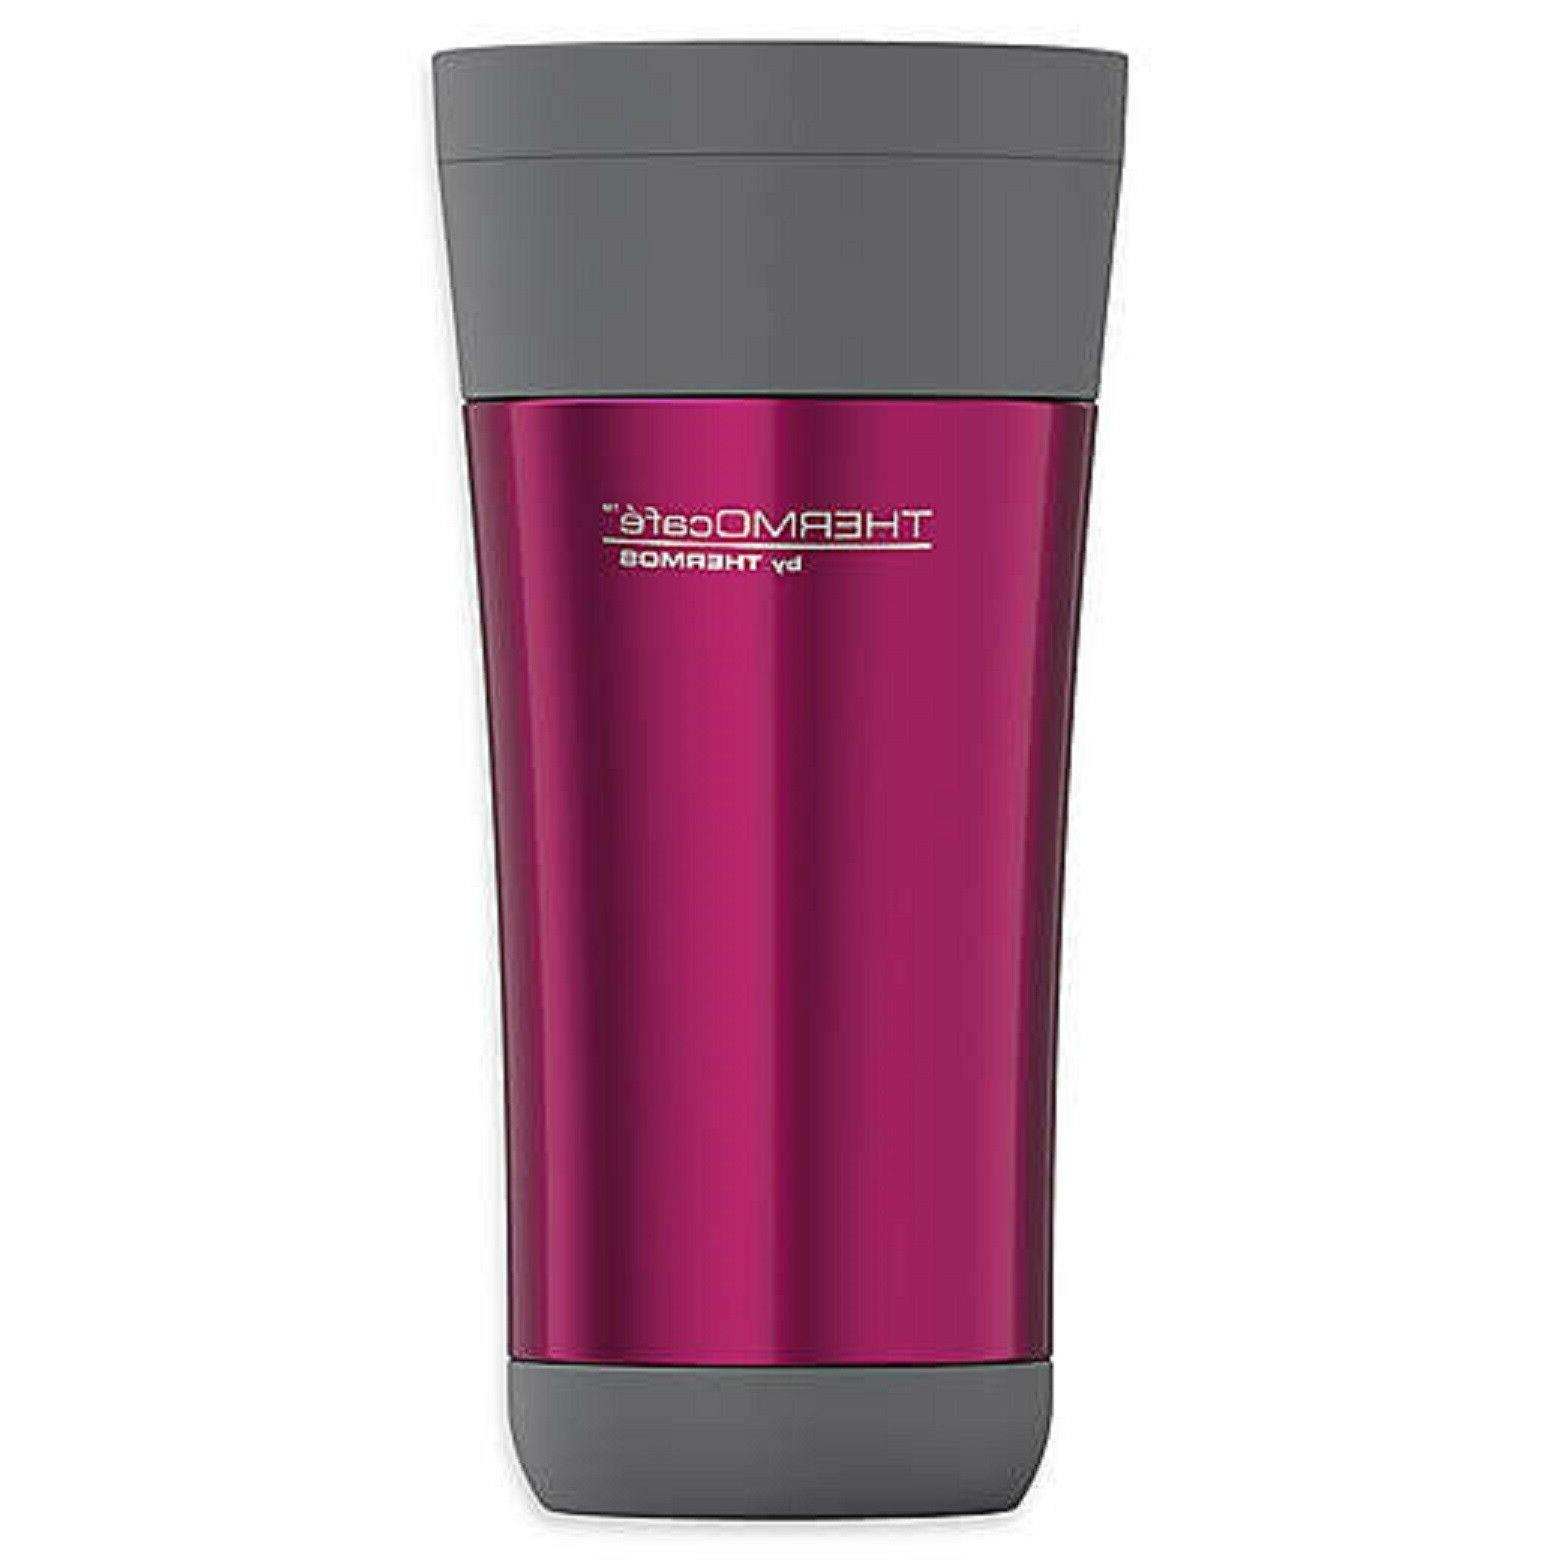 Thermos THERMOcafe 16 oz. Travel Tumbler Pink  Silver NWT